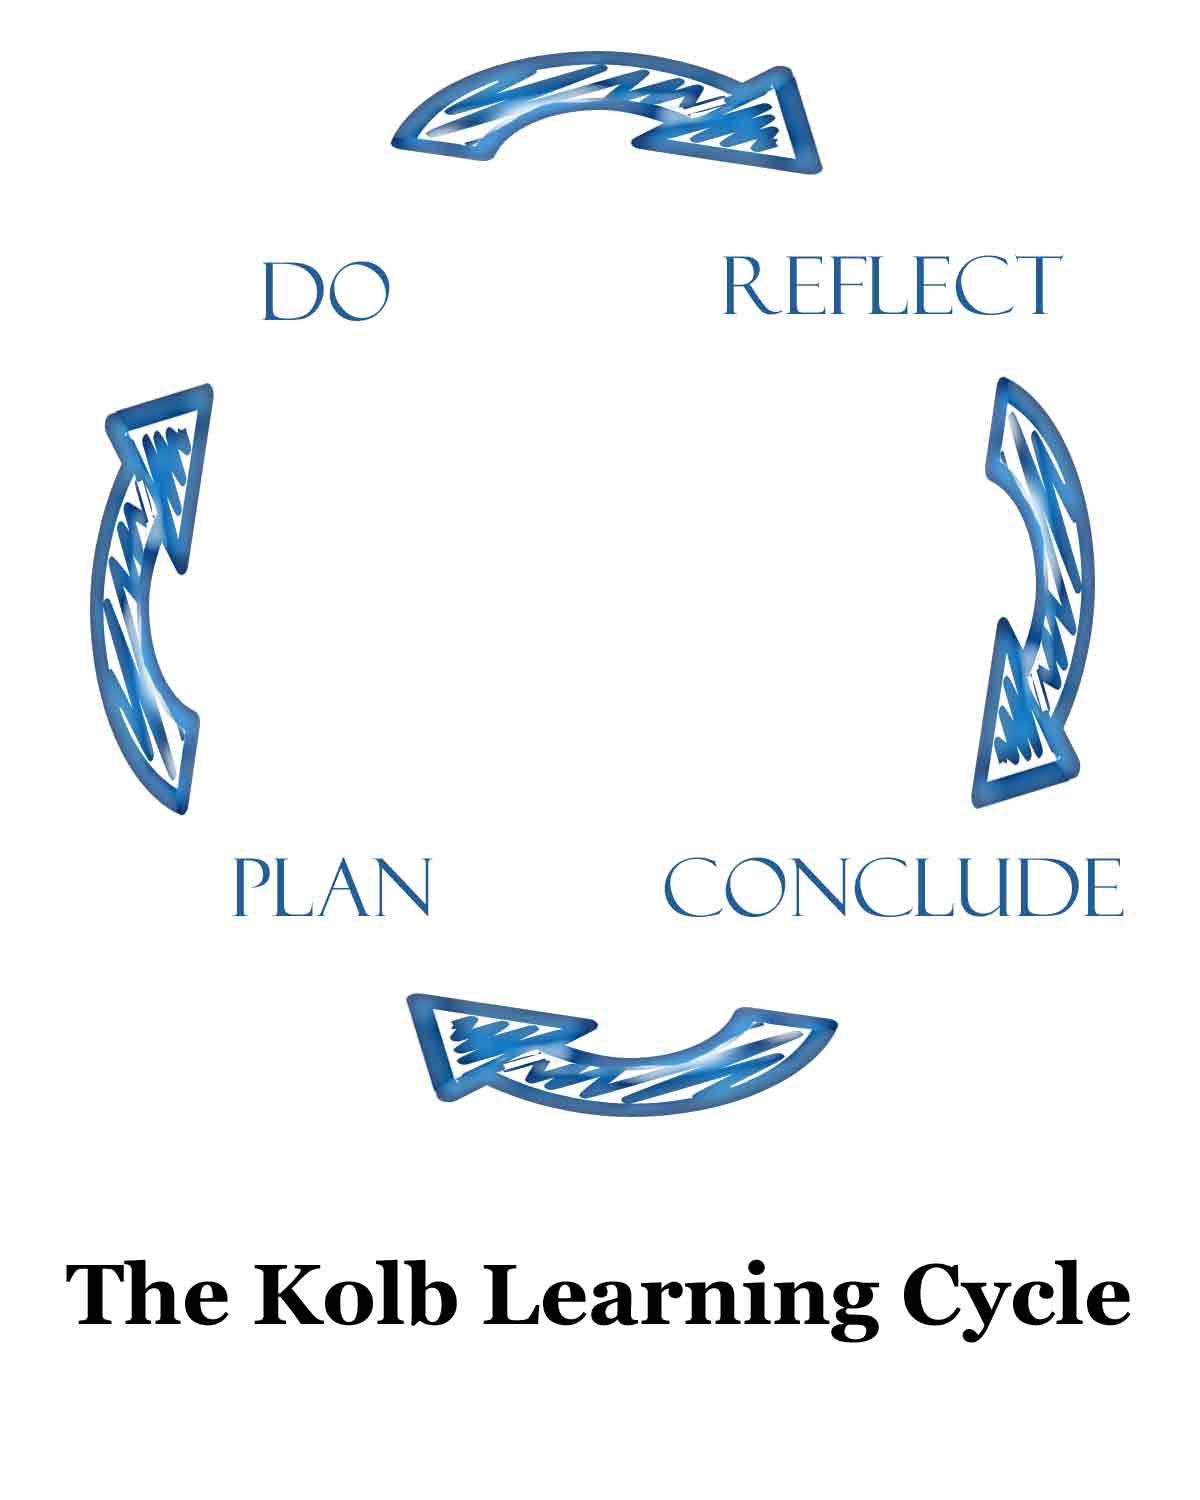 learning cycle one of the most important ideas behind the learning cycle is that learning does not happen simply by doing most learning happens afterwards as a result of